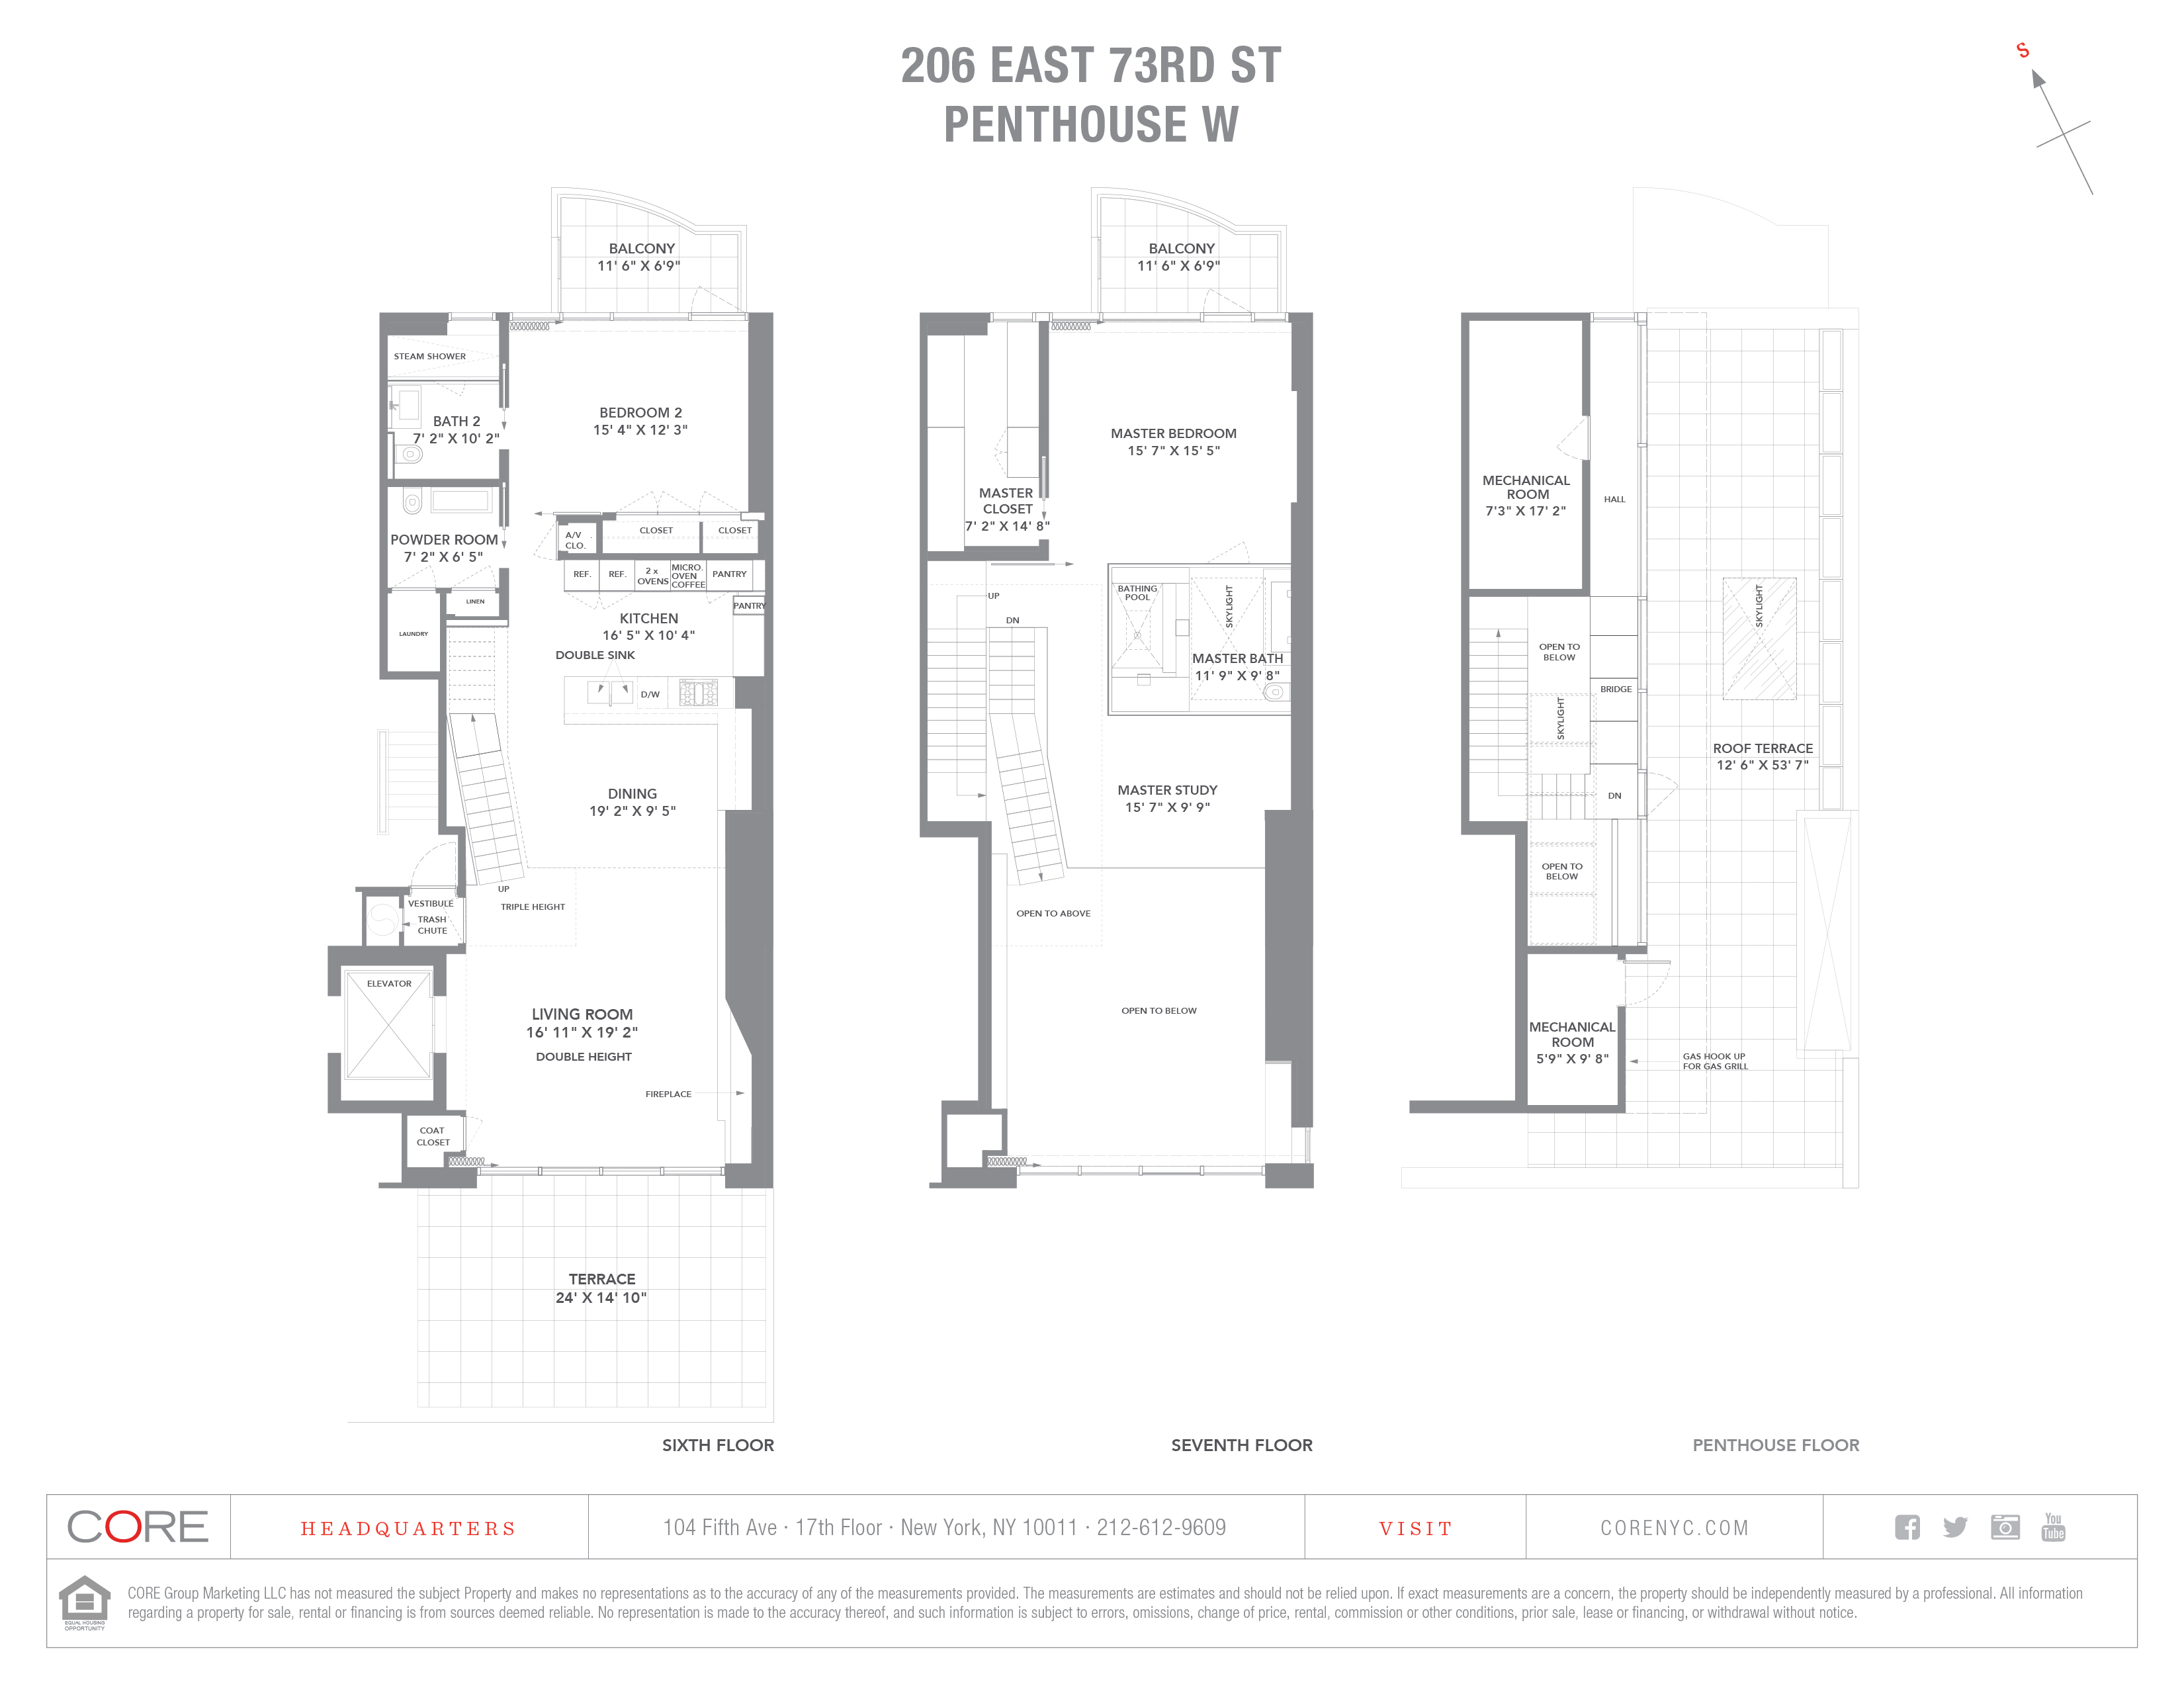 206 East 73rd St. PHW, New York, NY 10021